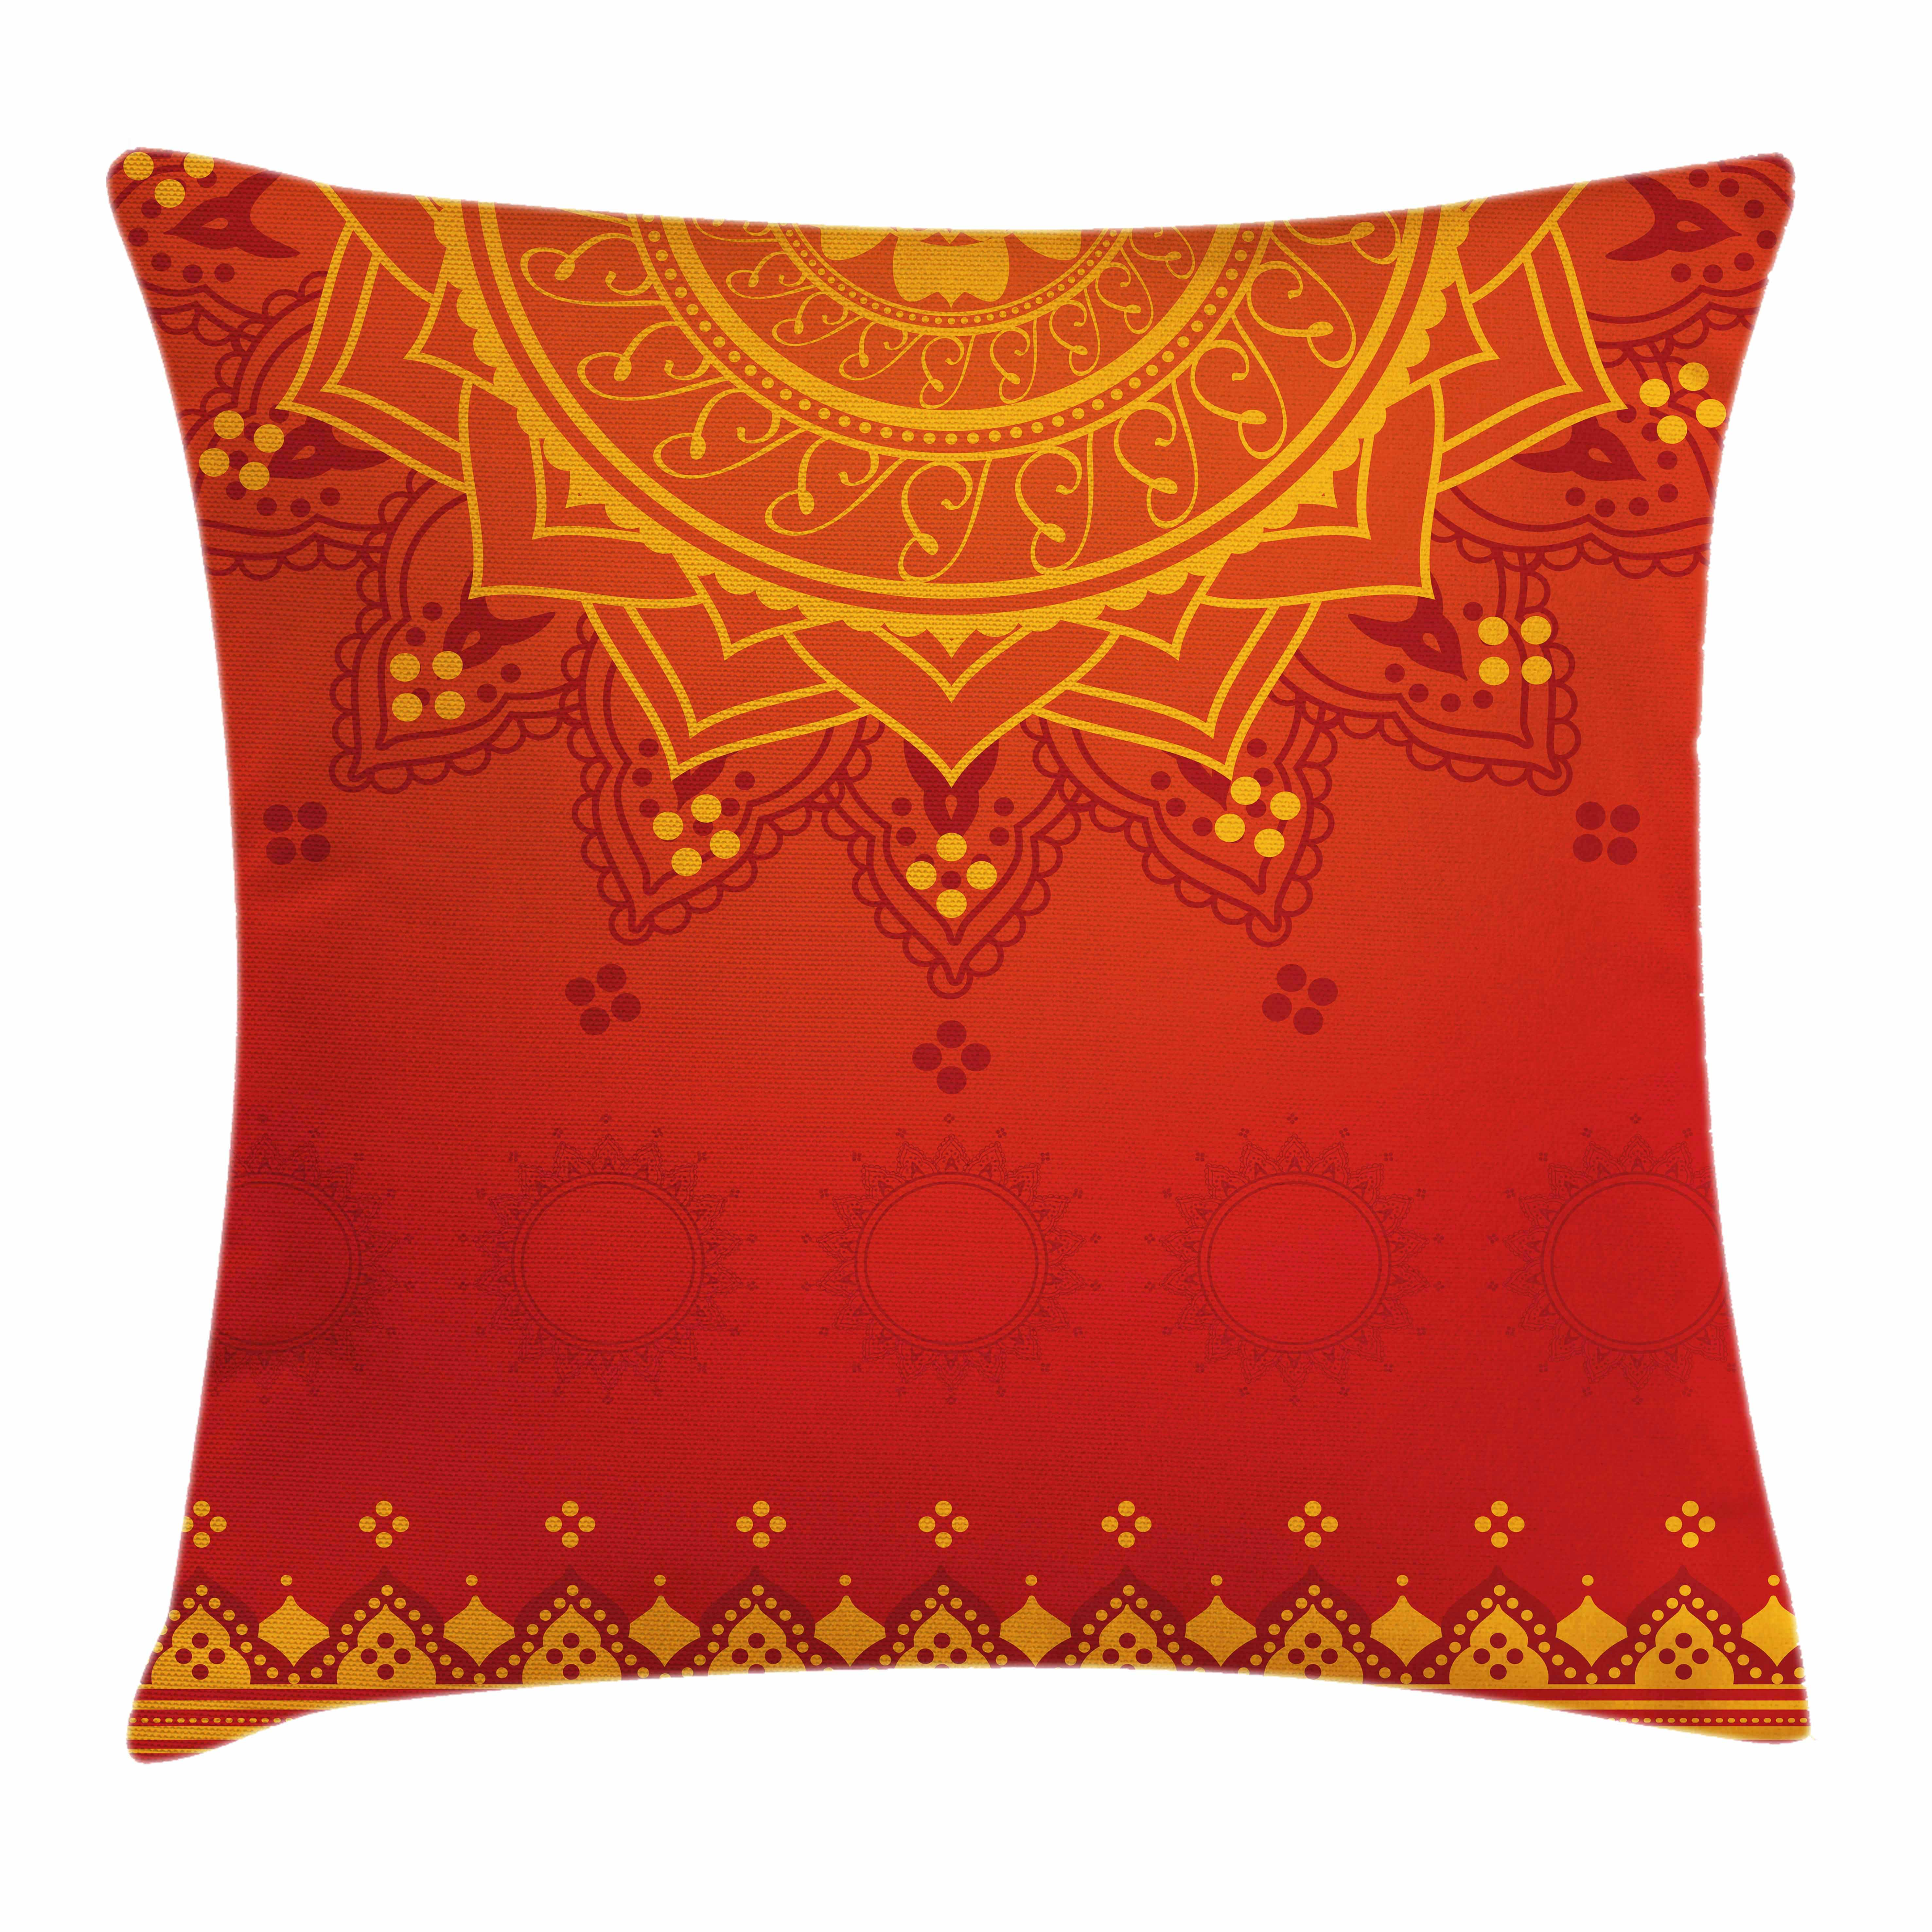 Lotus Throw Pillow Cushion Cover, Arabesque Background with Moroccan Traditional Featured Symbolic Boho Effect, Decorative Square Accent Pillow Case, 16 X 16 Inches, Marigold Red Orange, by Ambesonne